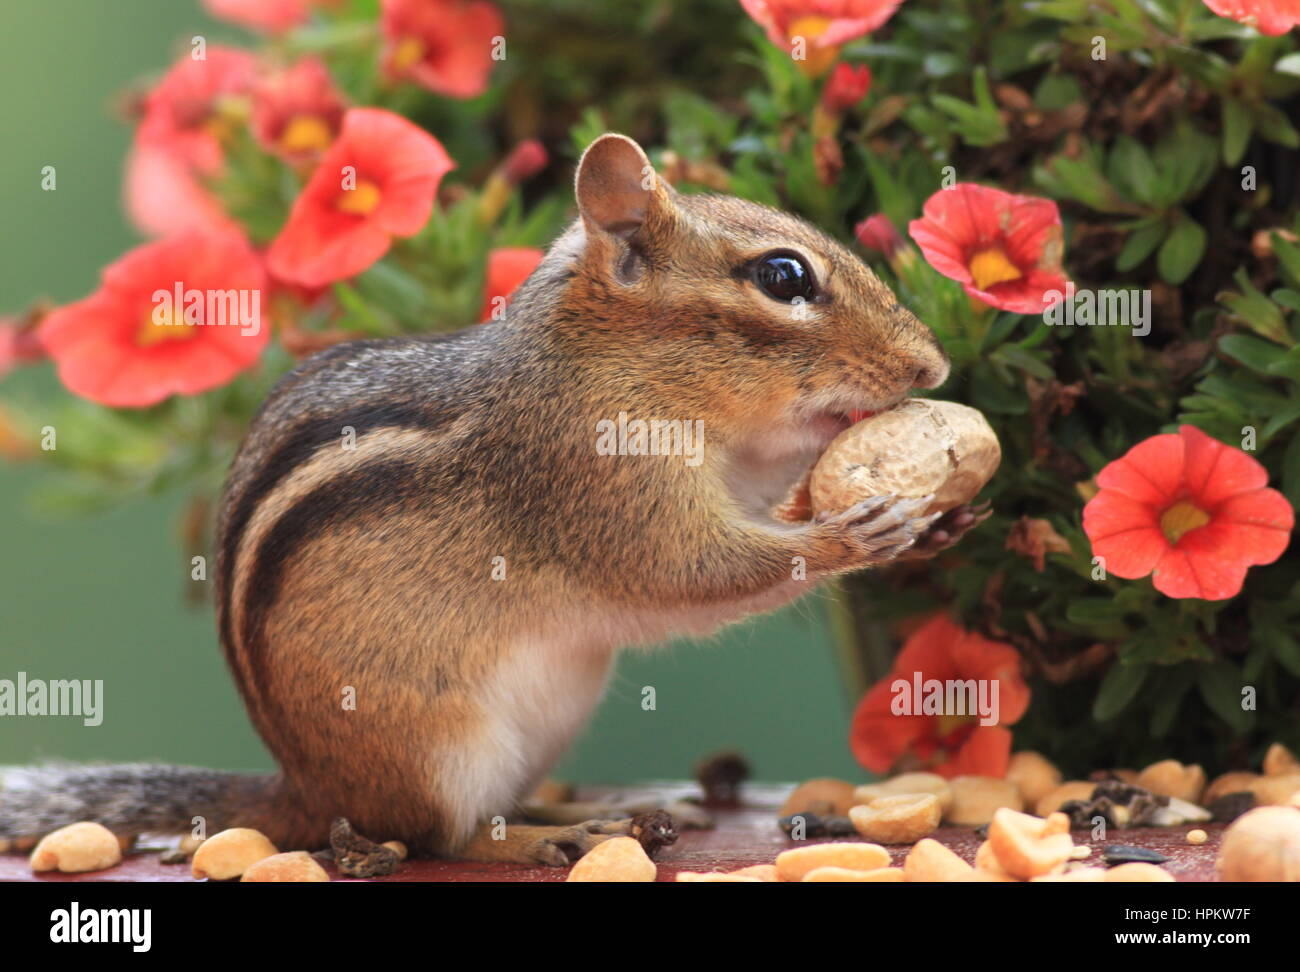 Cute Eastern Chipmunk (Tamias Striatus) stands next to Petunia flower plant and eats peanuts - Stock Image